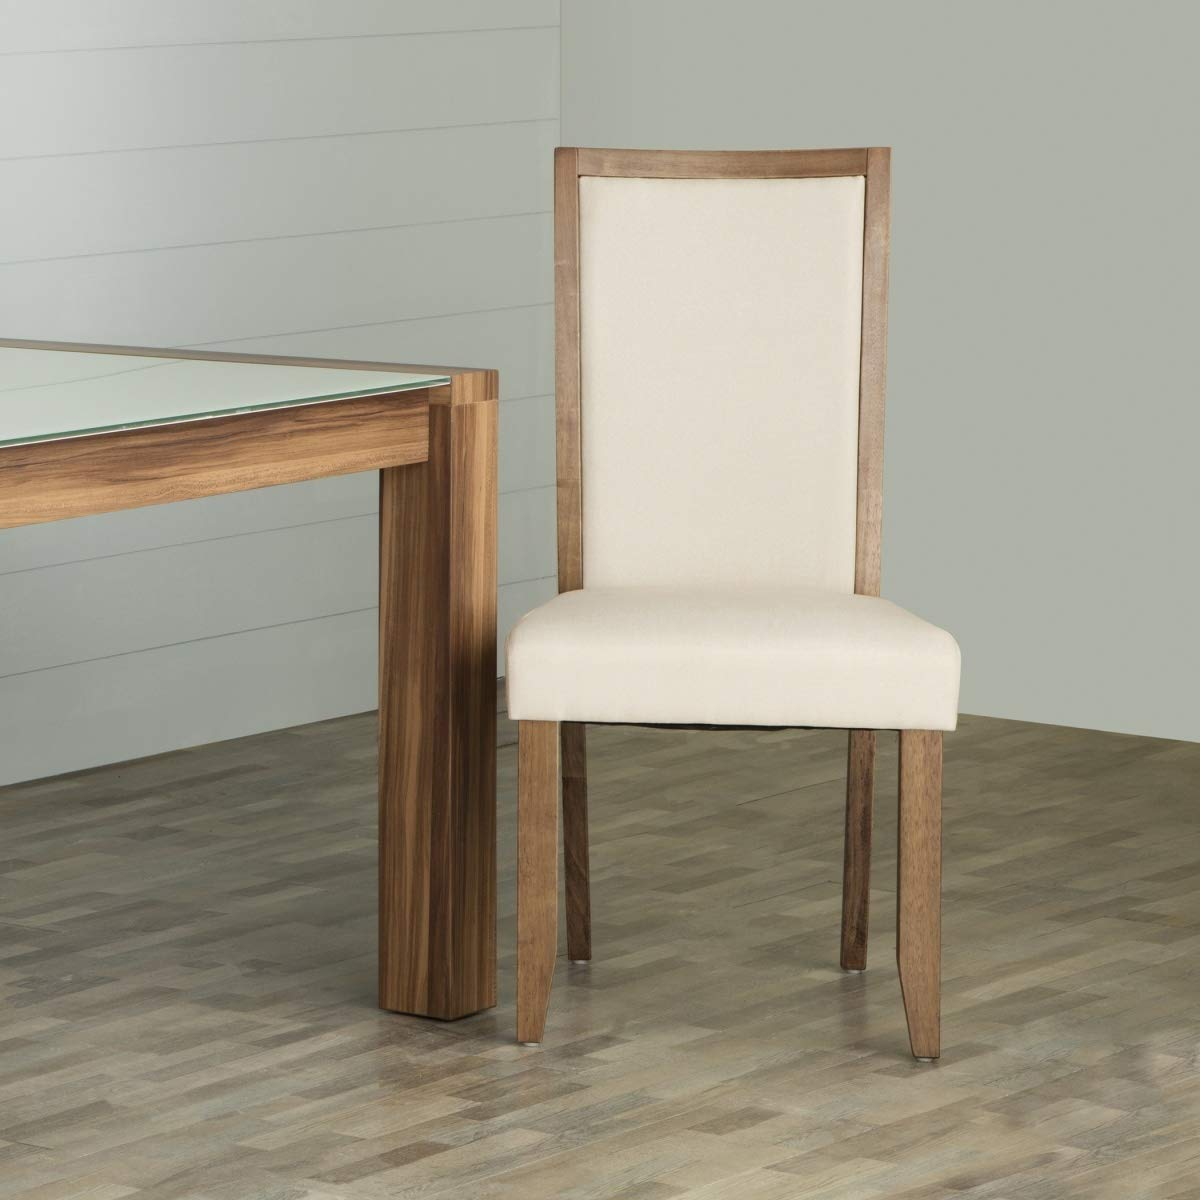 Home Centre Rubber Wood; Solid Wood Contemporary Dining Chair  Beige, 2 Pieces  Dining Chairs